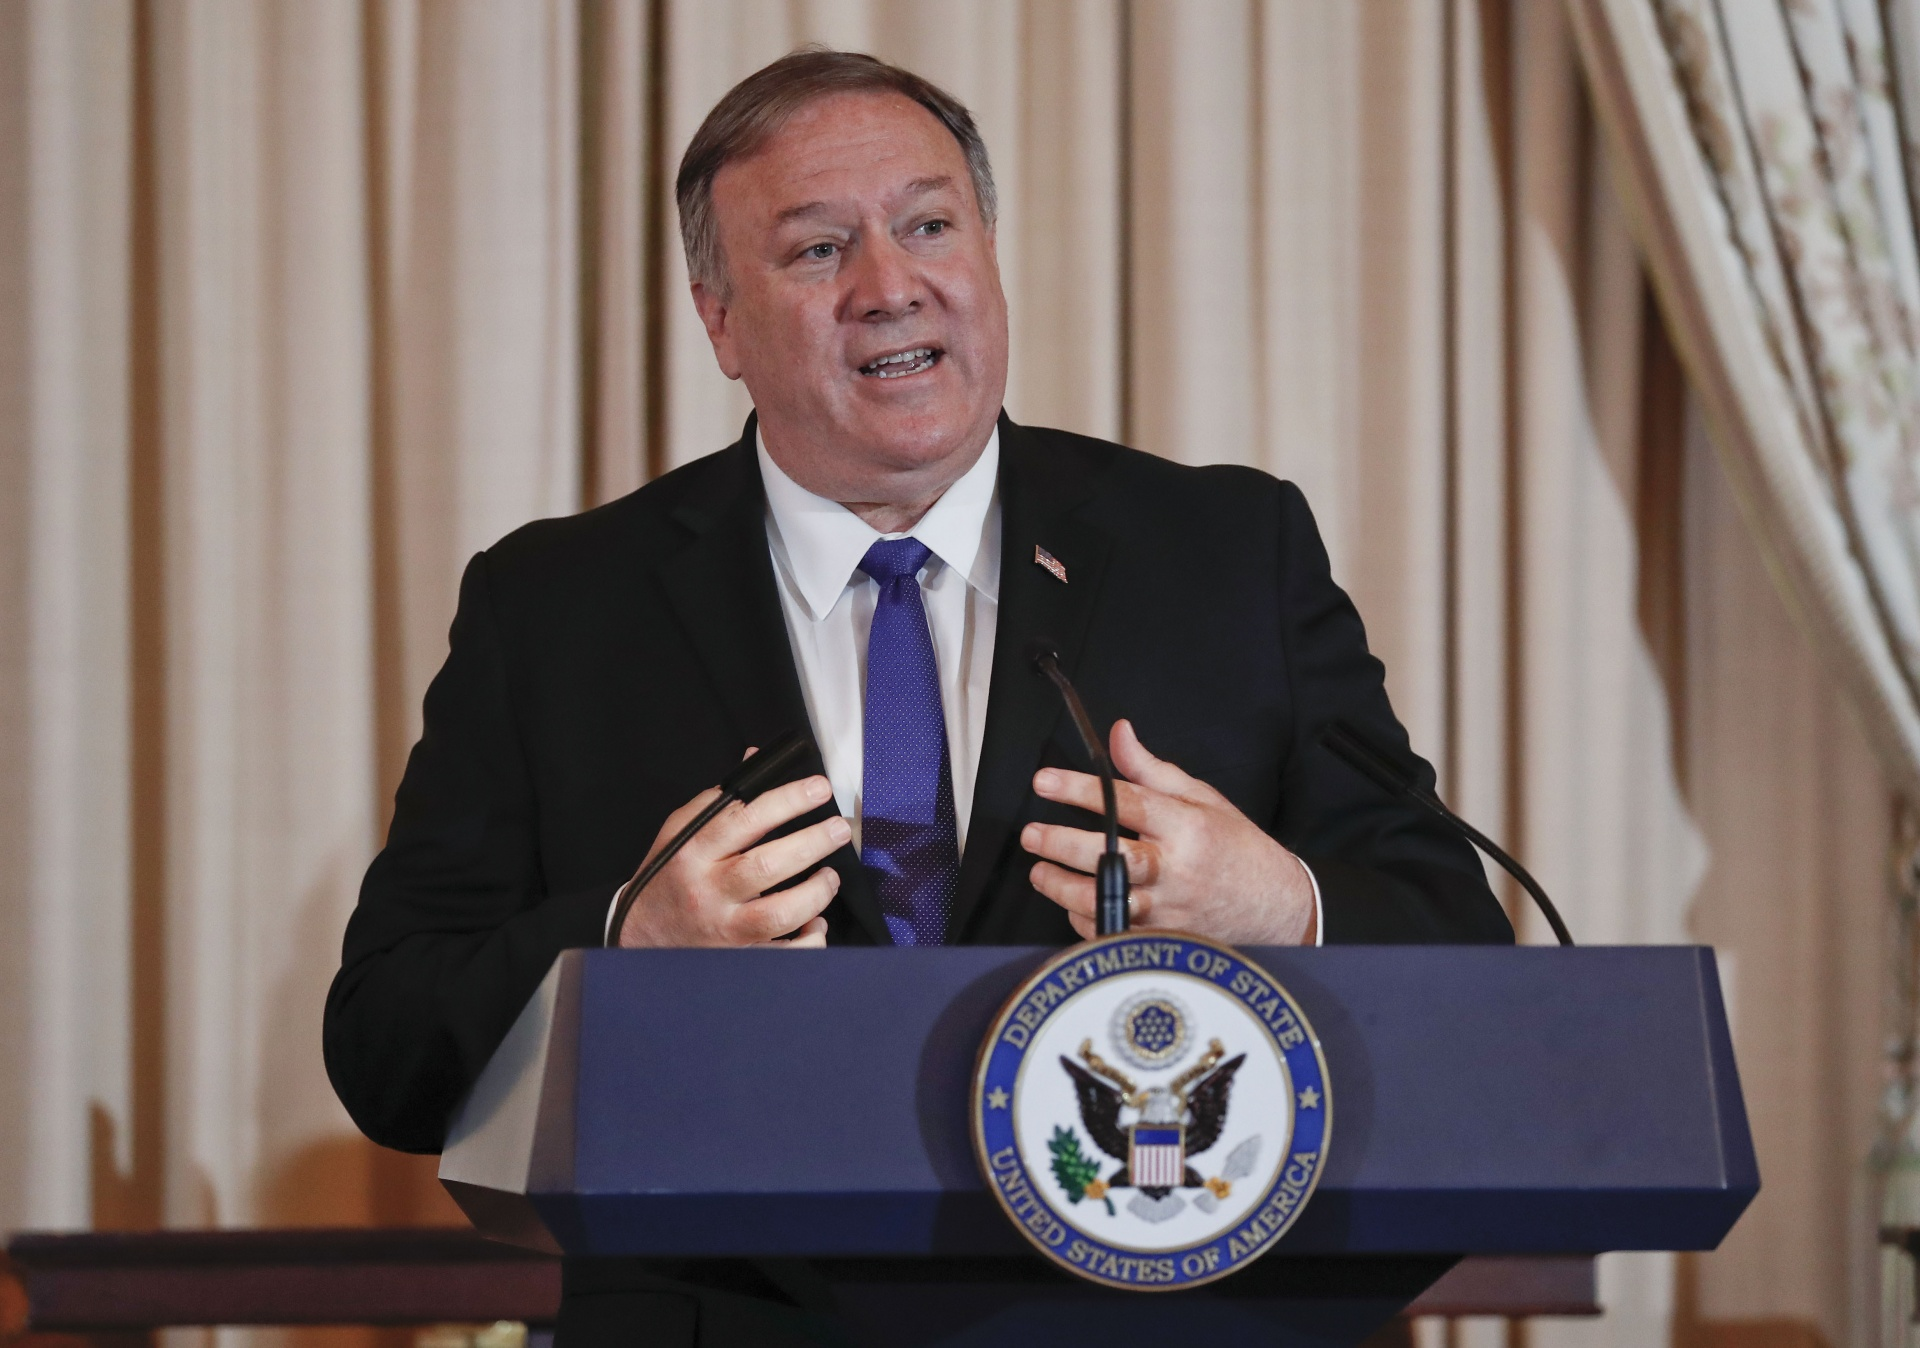 US secretary of state and former CIA director Mike Pompeo